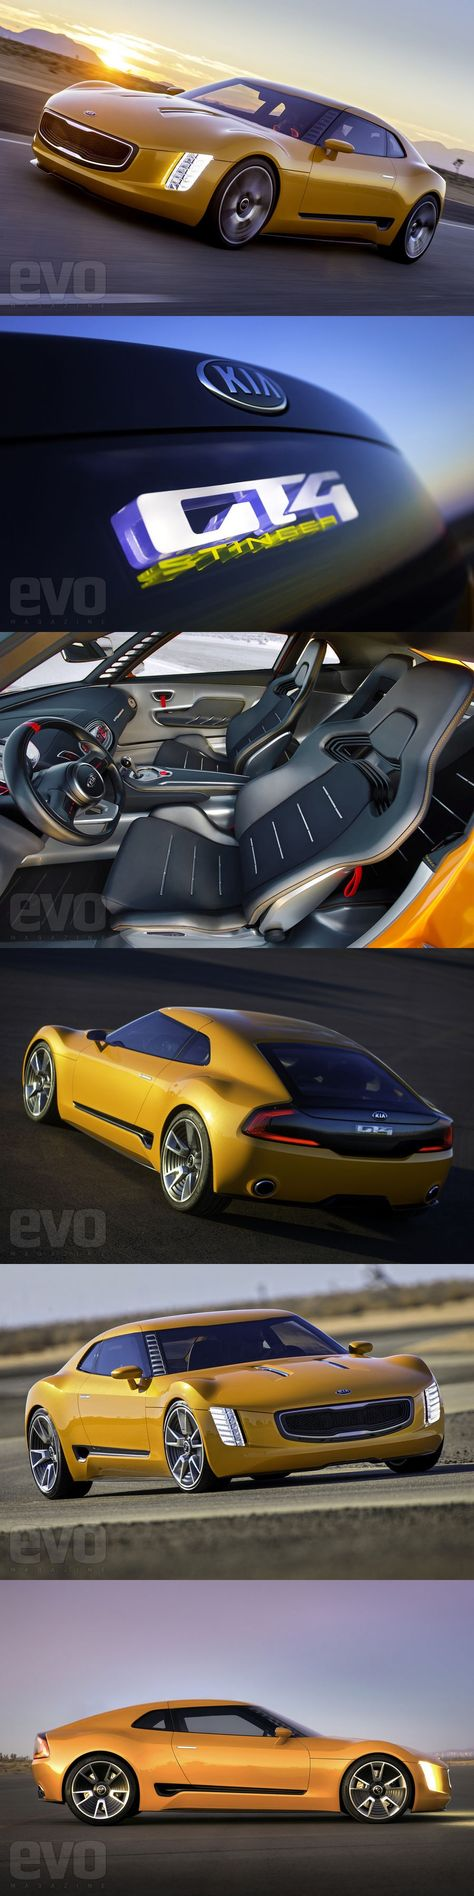 Luxury caravan with full size sports car garage from futuria - Luxury Caravan With Full Size Sports Car Garage From Futuria 13